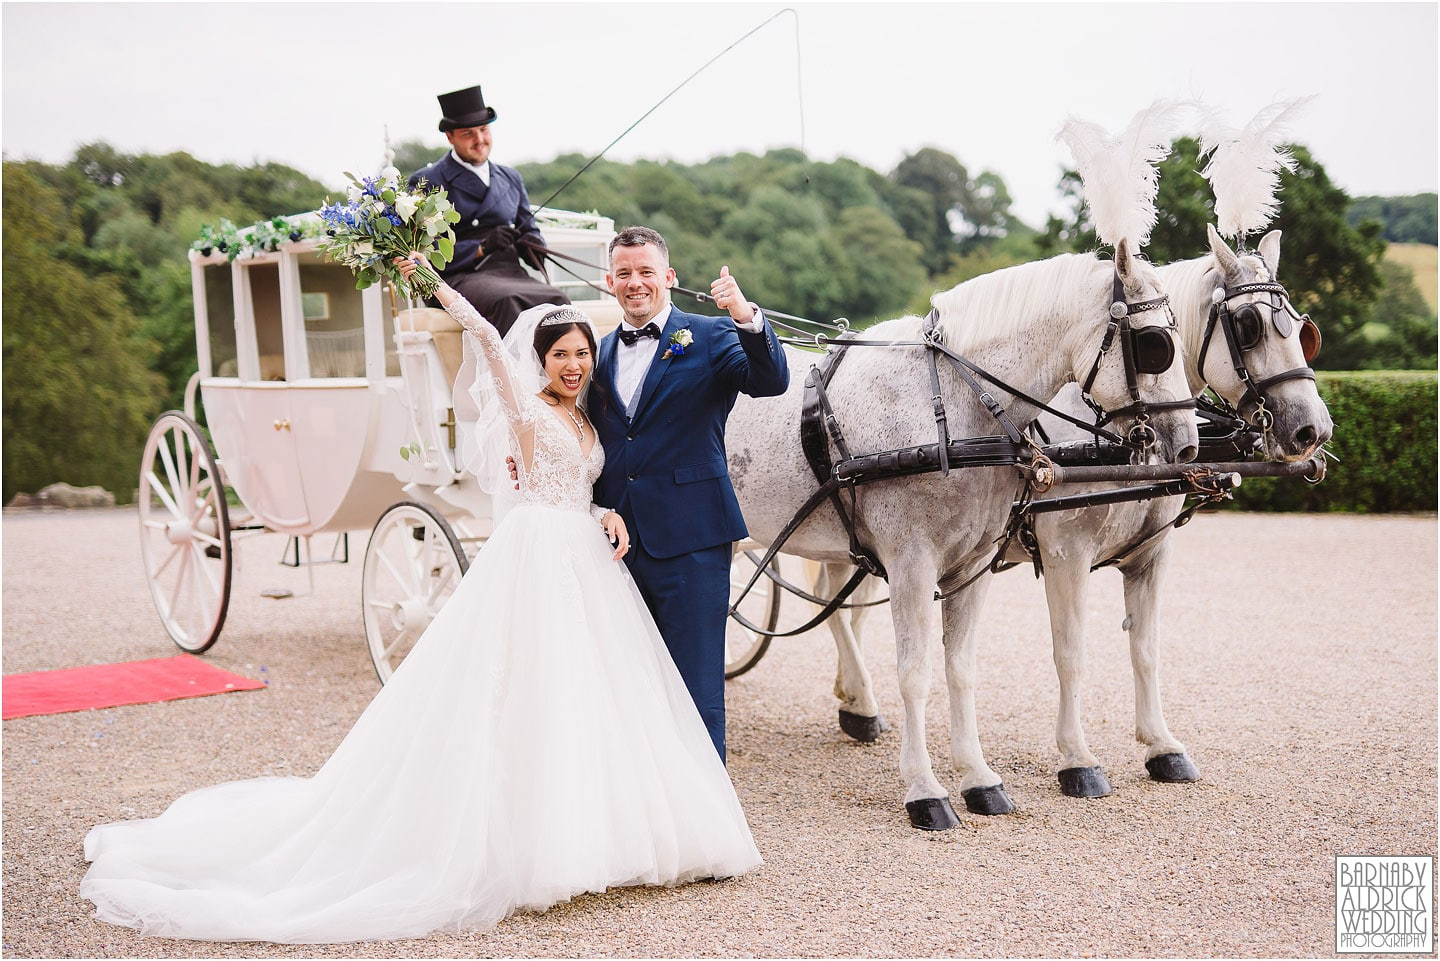 Wood Hall Bride groom horse and carriage wedding photo